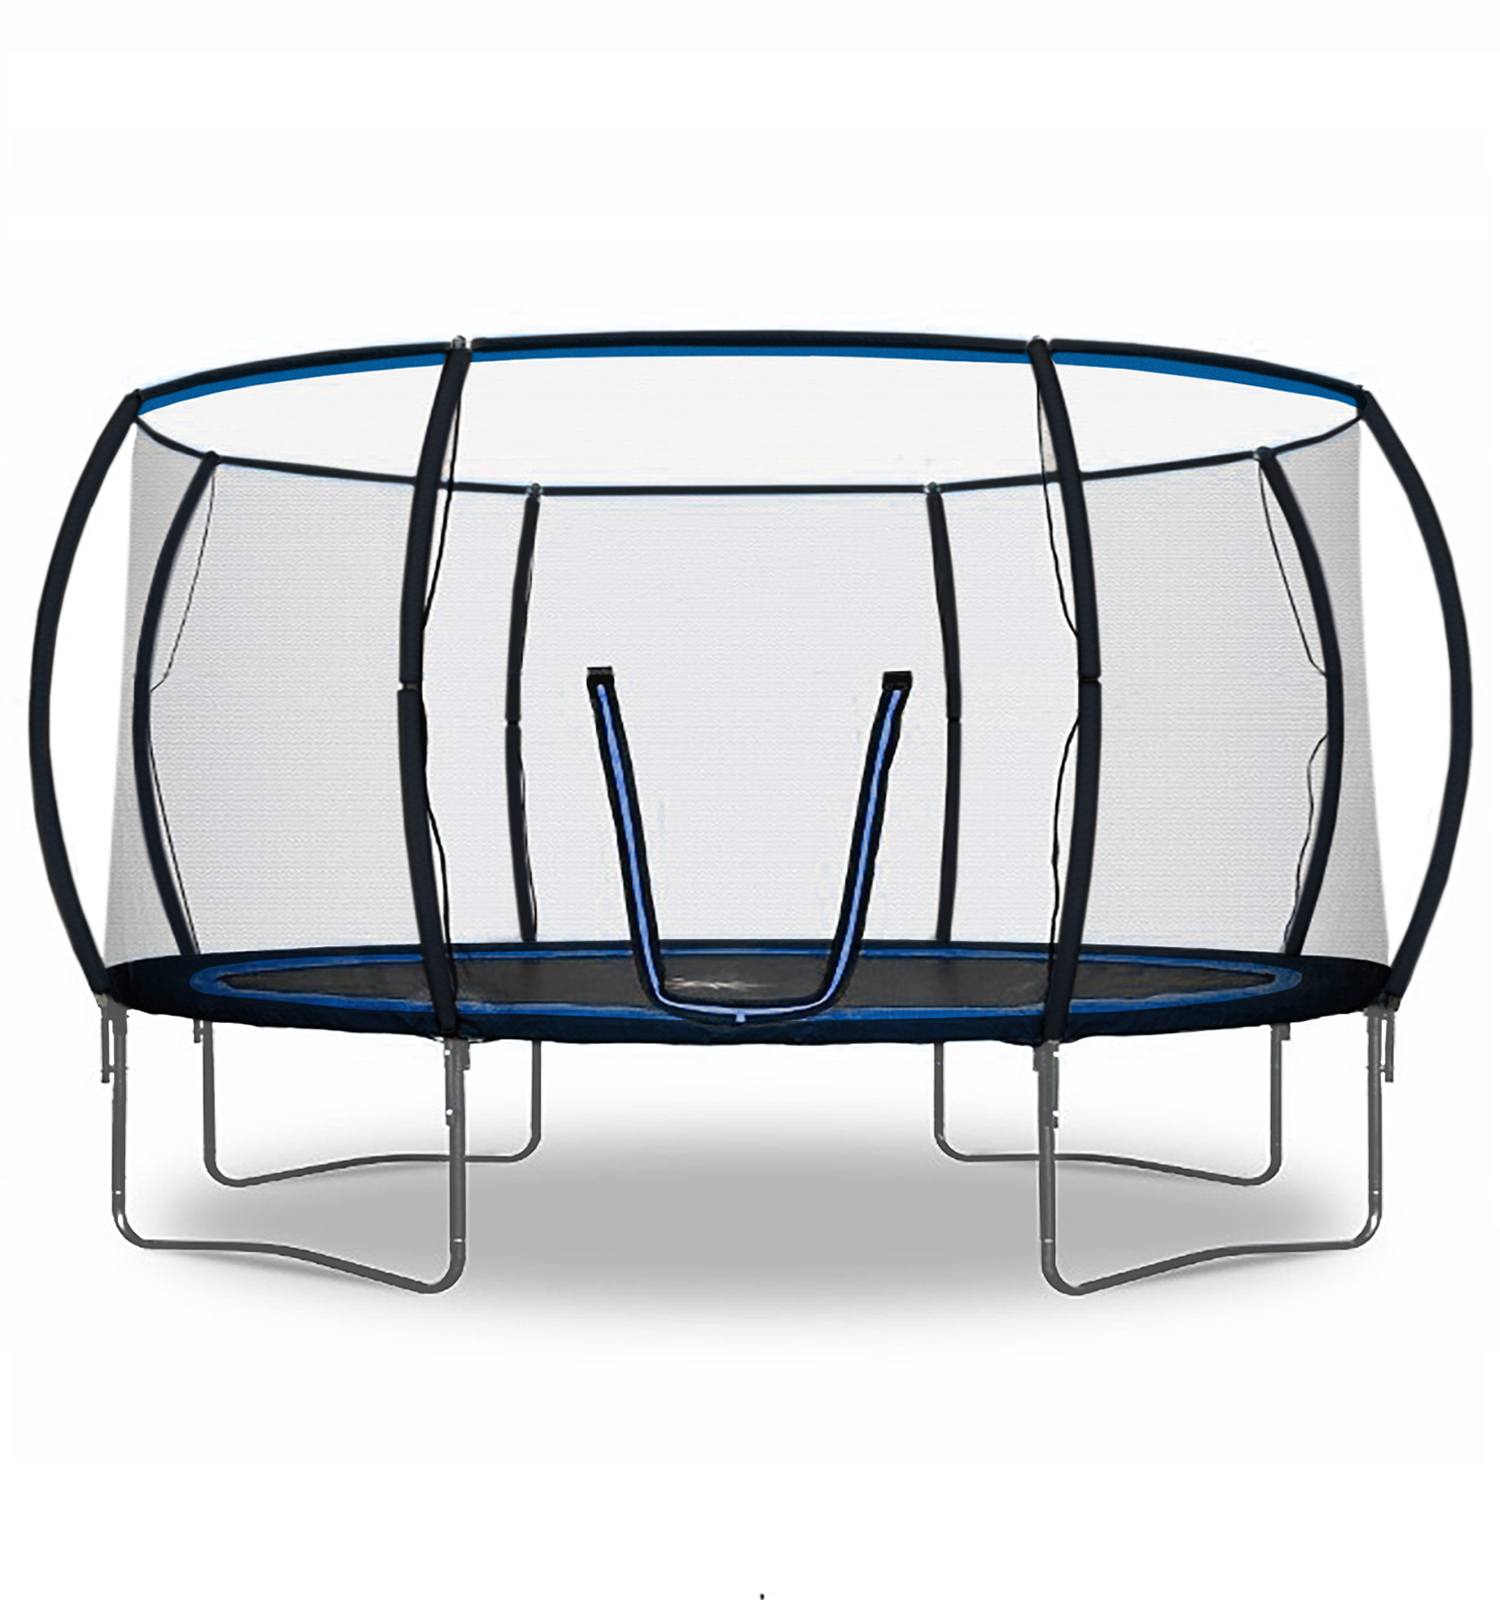 Rebo Jump Zone Ii Trampoline With Halo Safety Enclosure 2020 Model 14ft Ebay